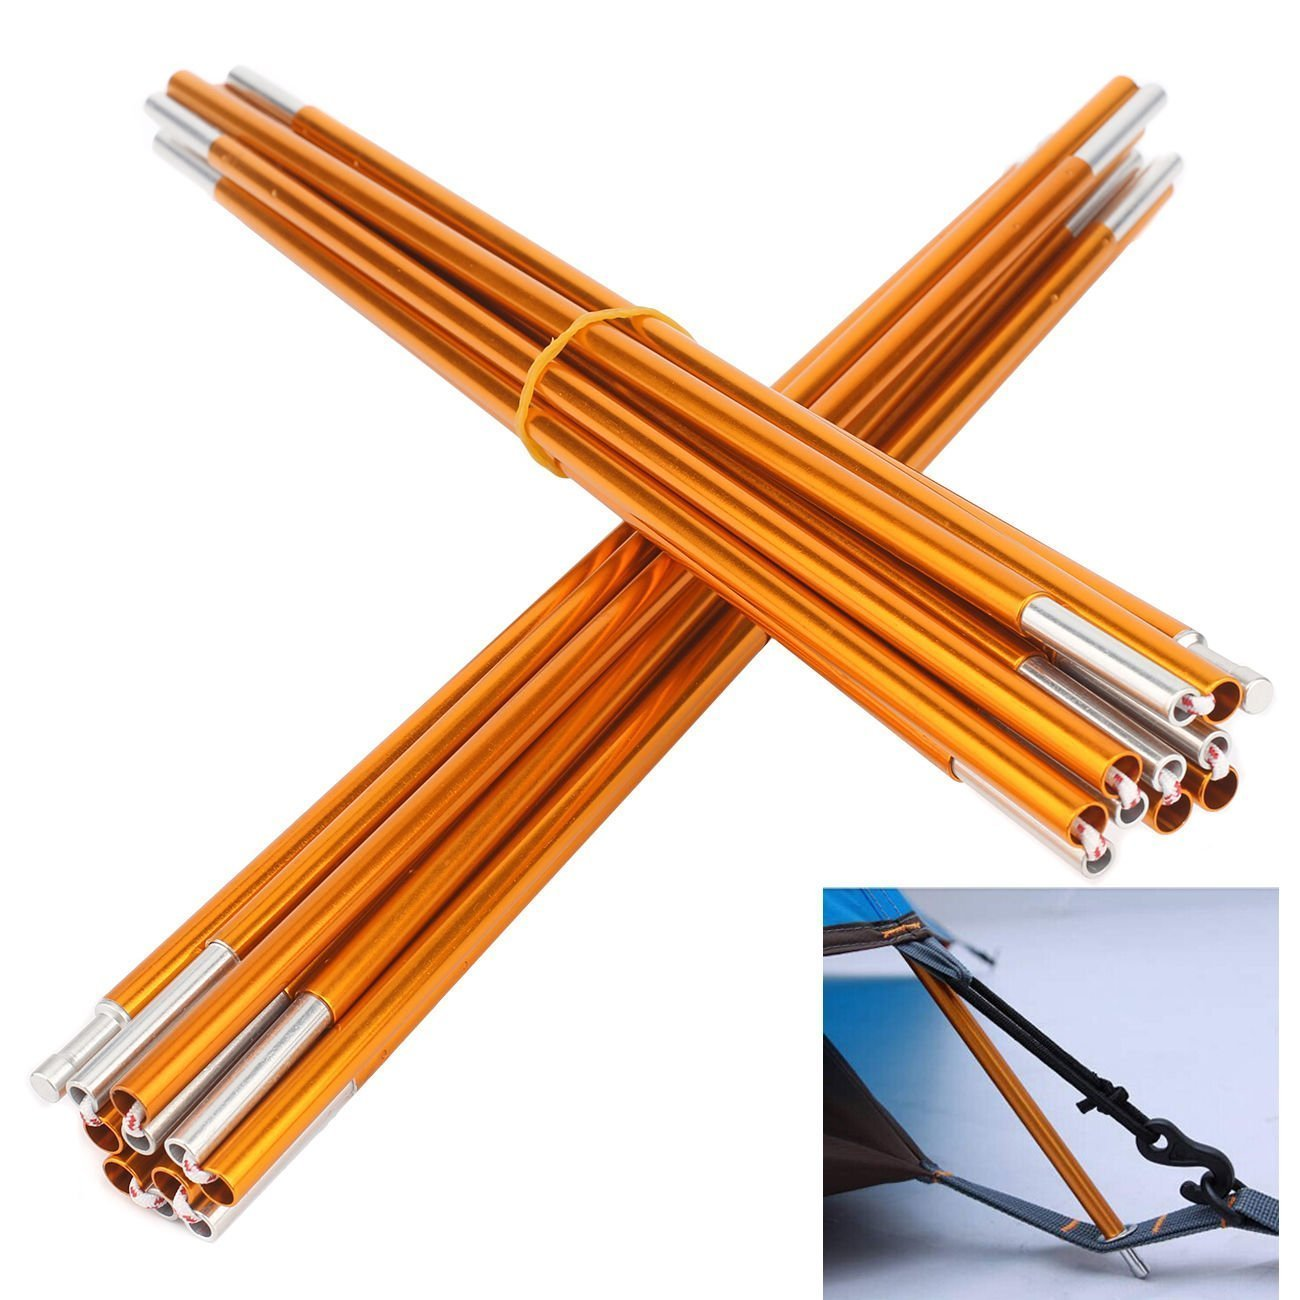 2pcs/set Tent pole 8.5mm Aluminum alloy outdoor camping tent support poles skeleton spare replacement tent rod tent accessories